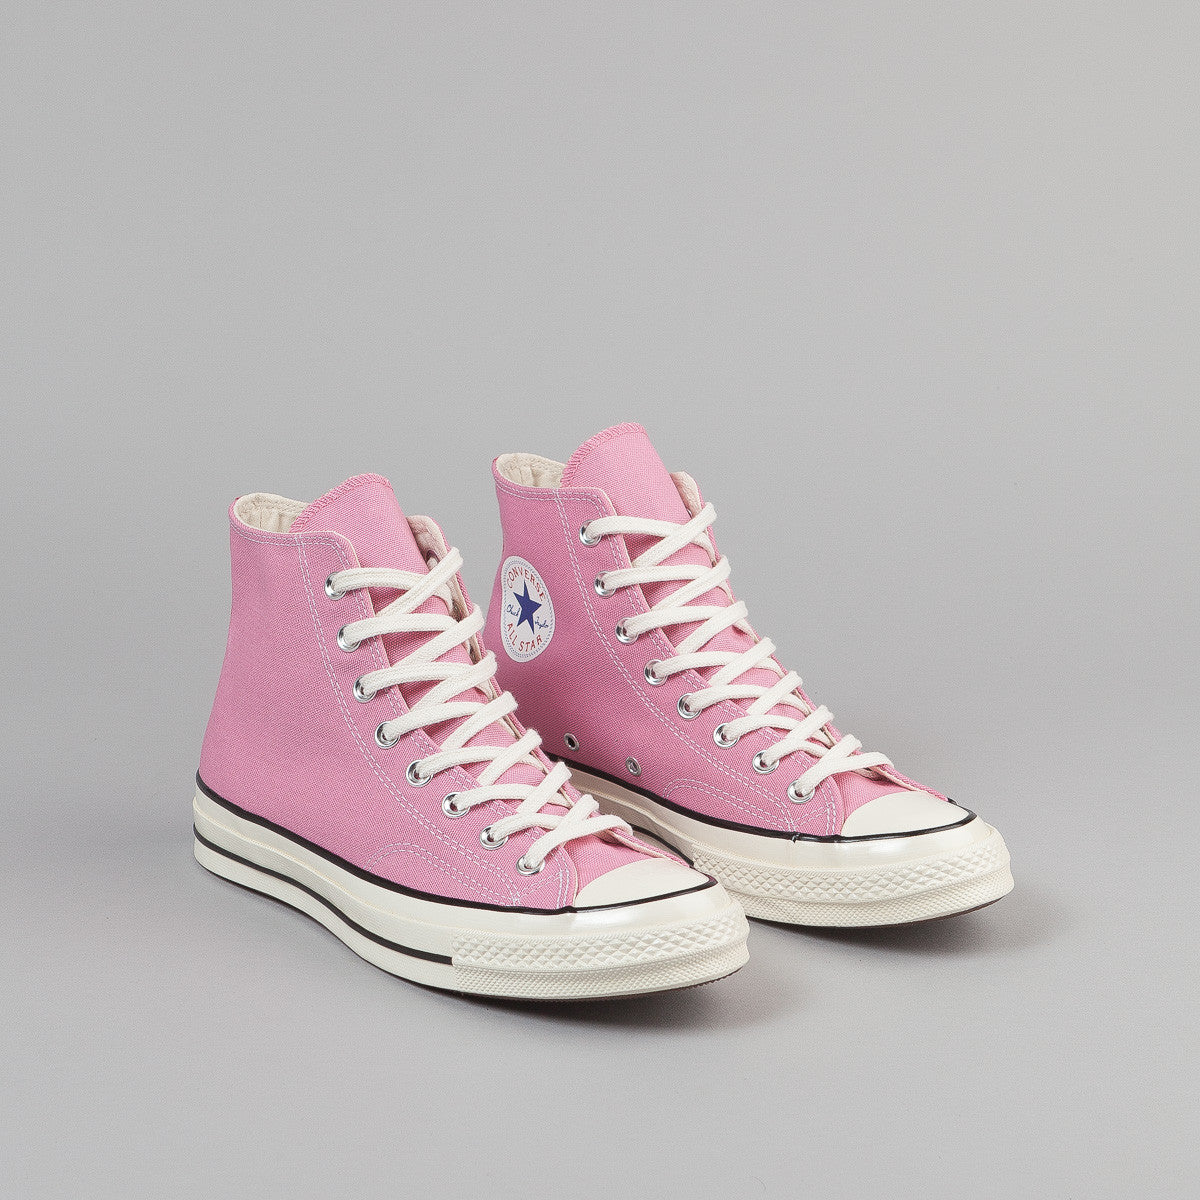 Converse CTAS 70's Hi Shoes - Chateau Rose / Black / Egret